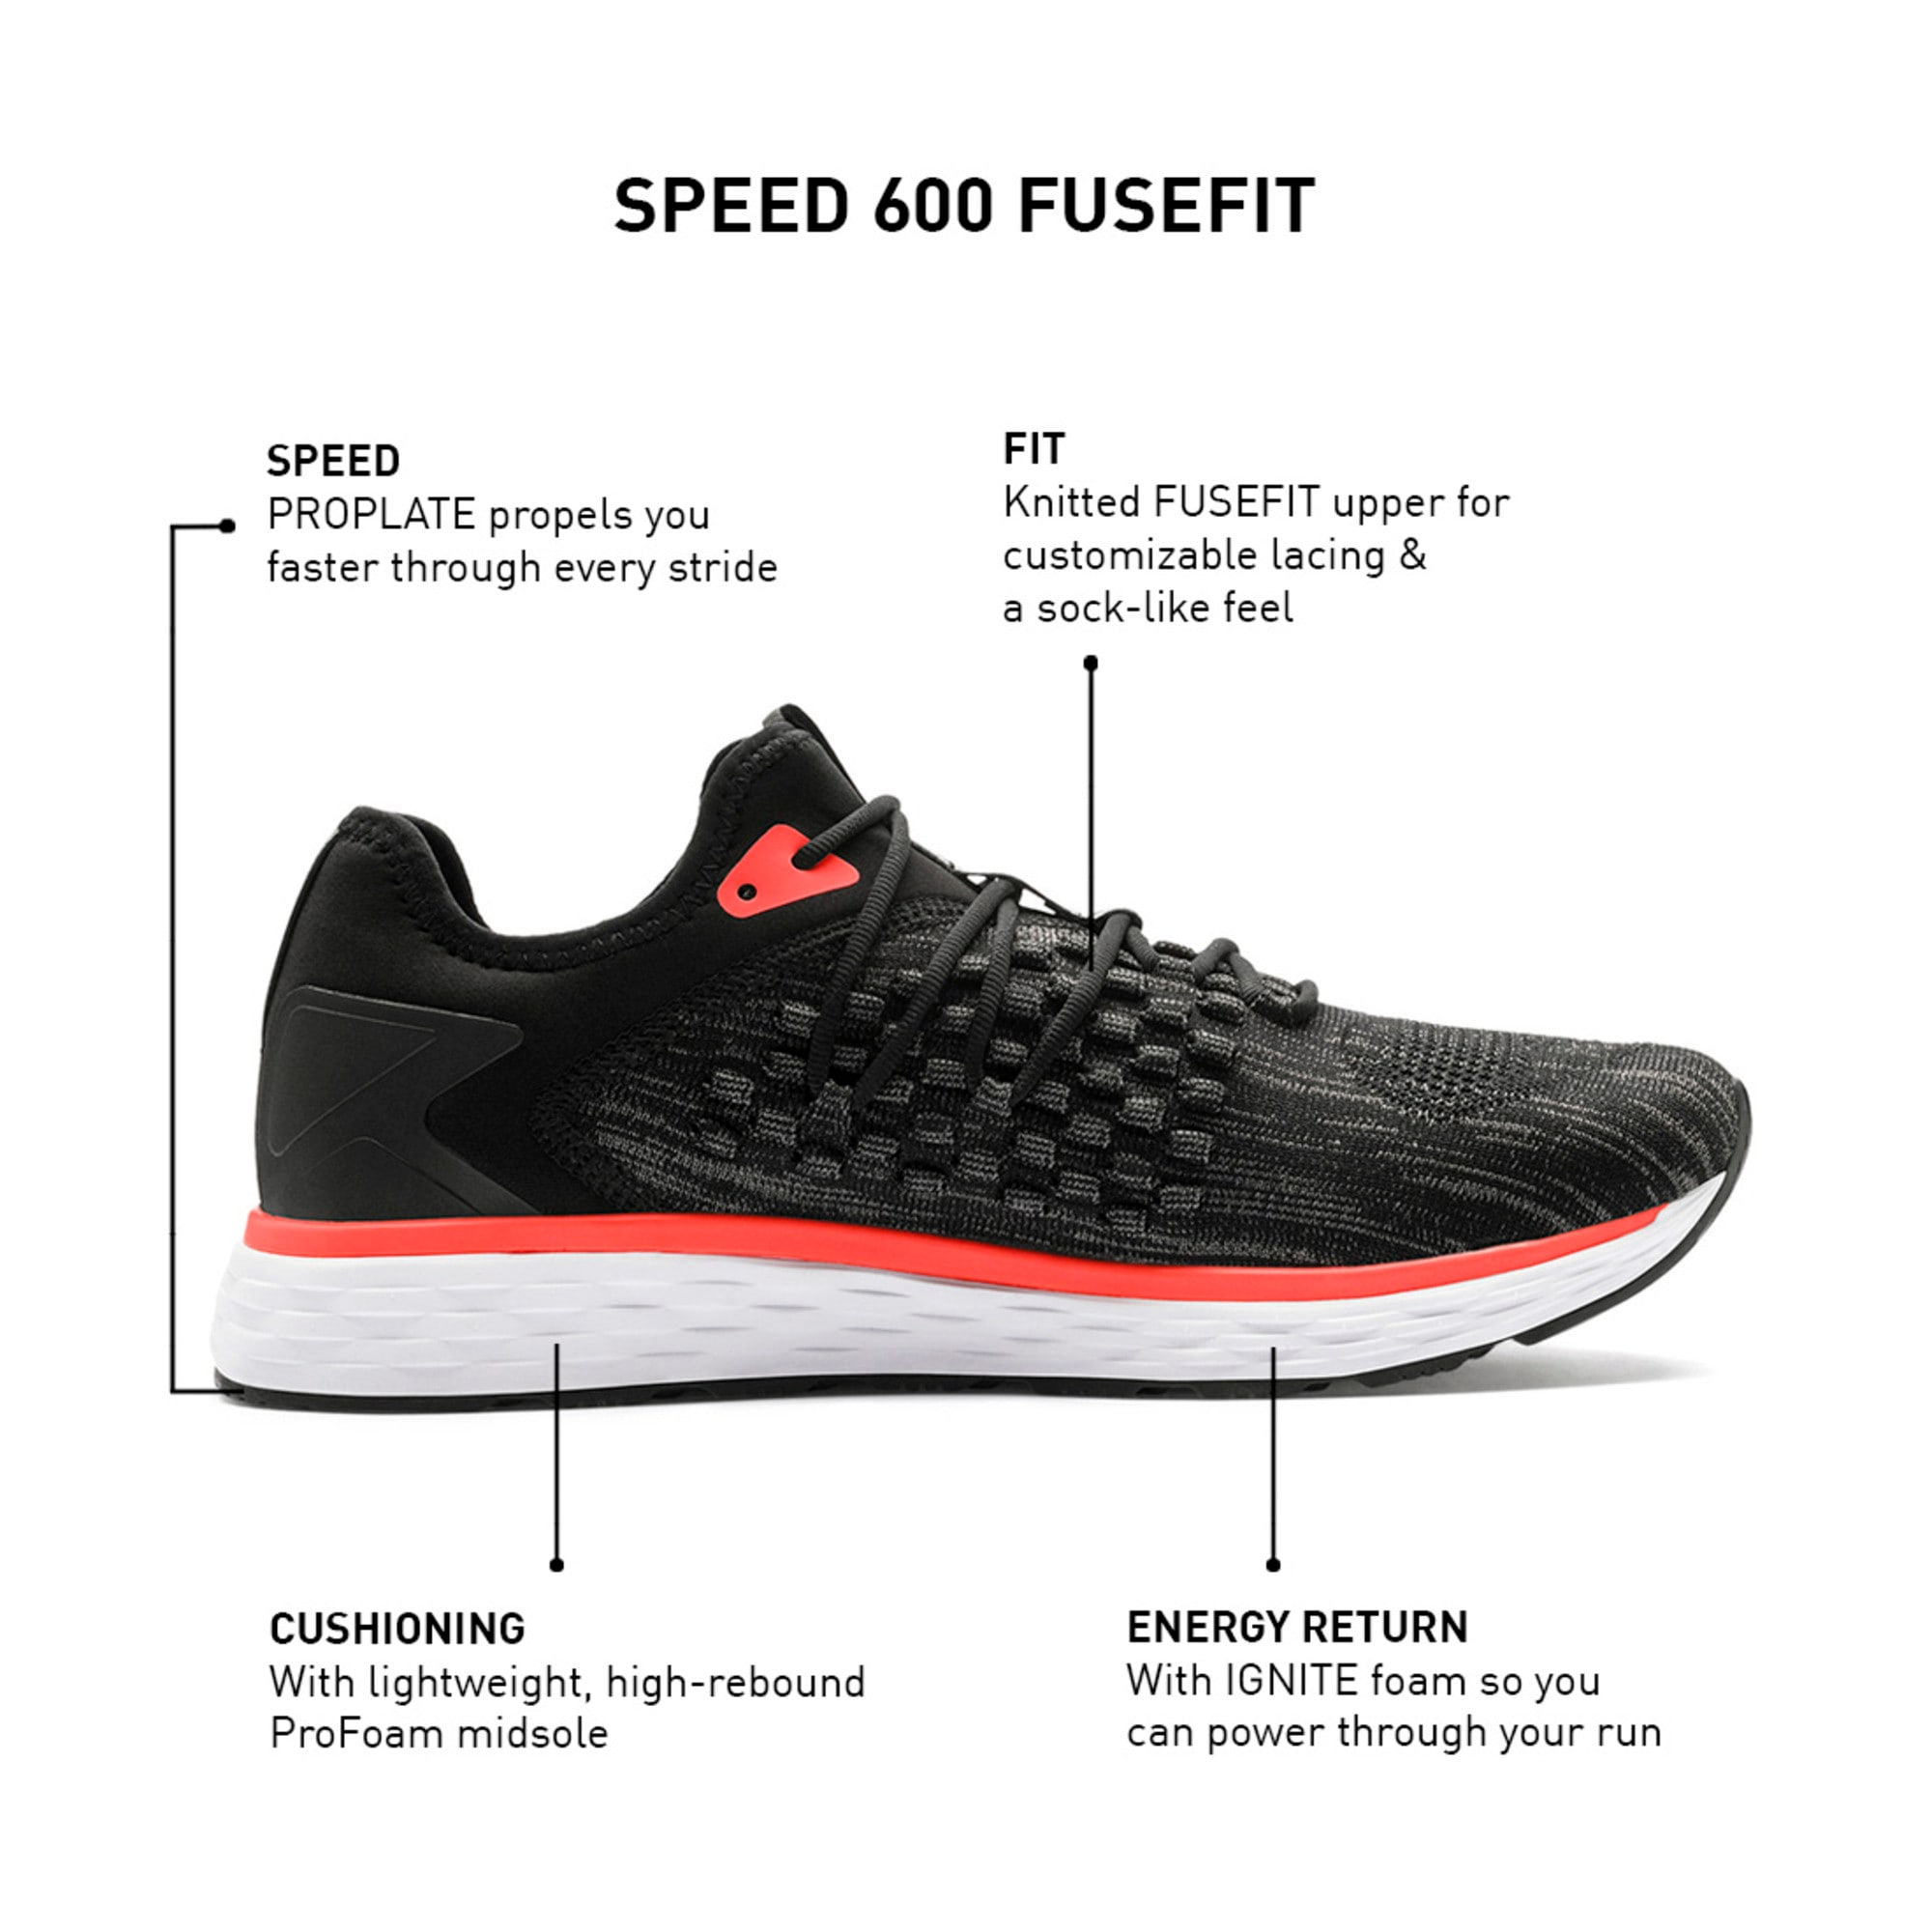 Thumbnail 9 of SPEED FUSEFIT Men's Running Shoes, Puma Black-Nrgy Red, medium-IND